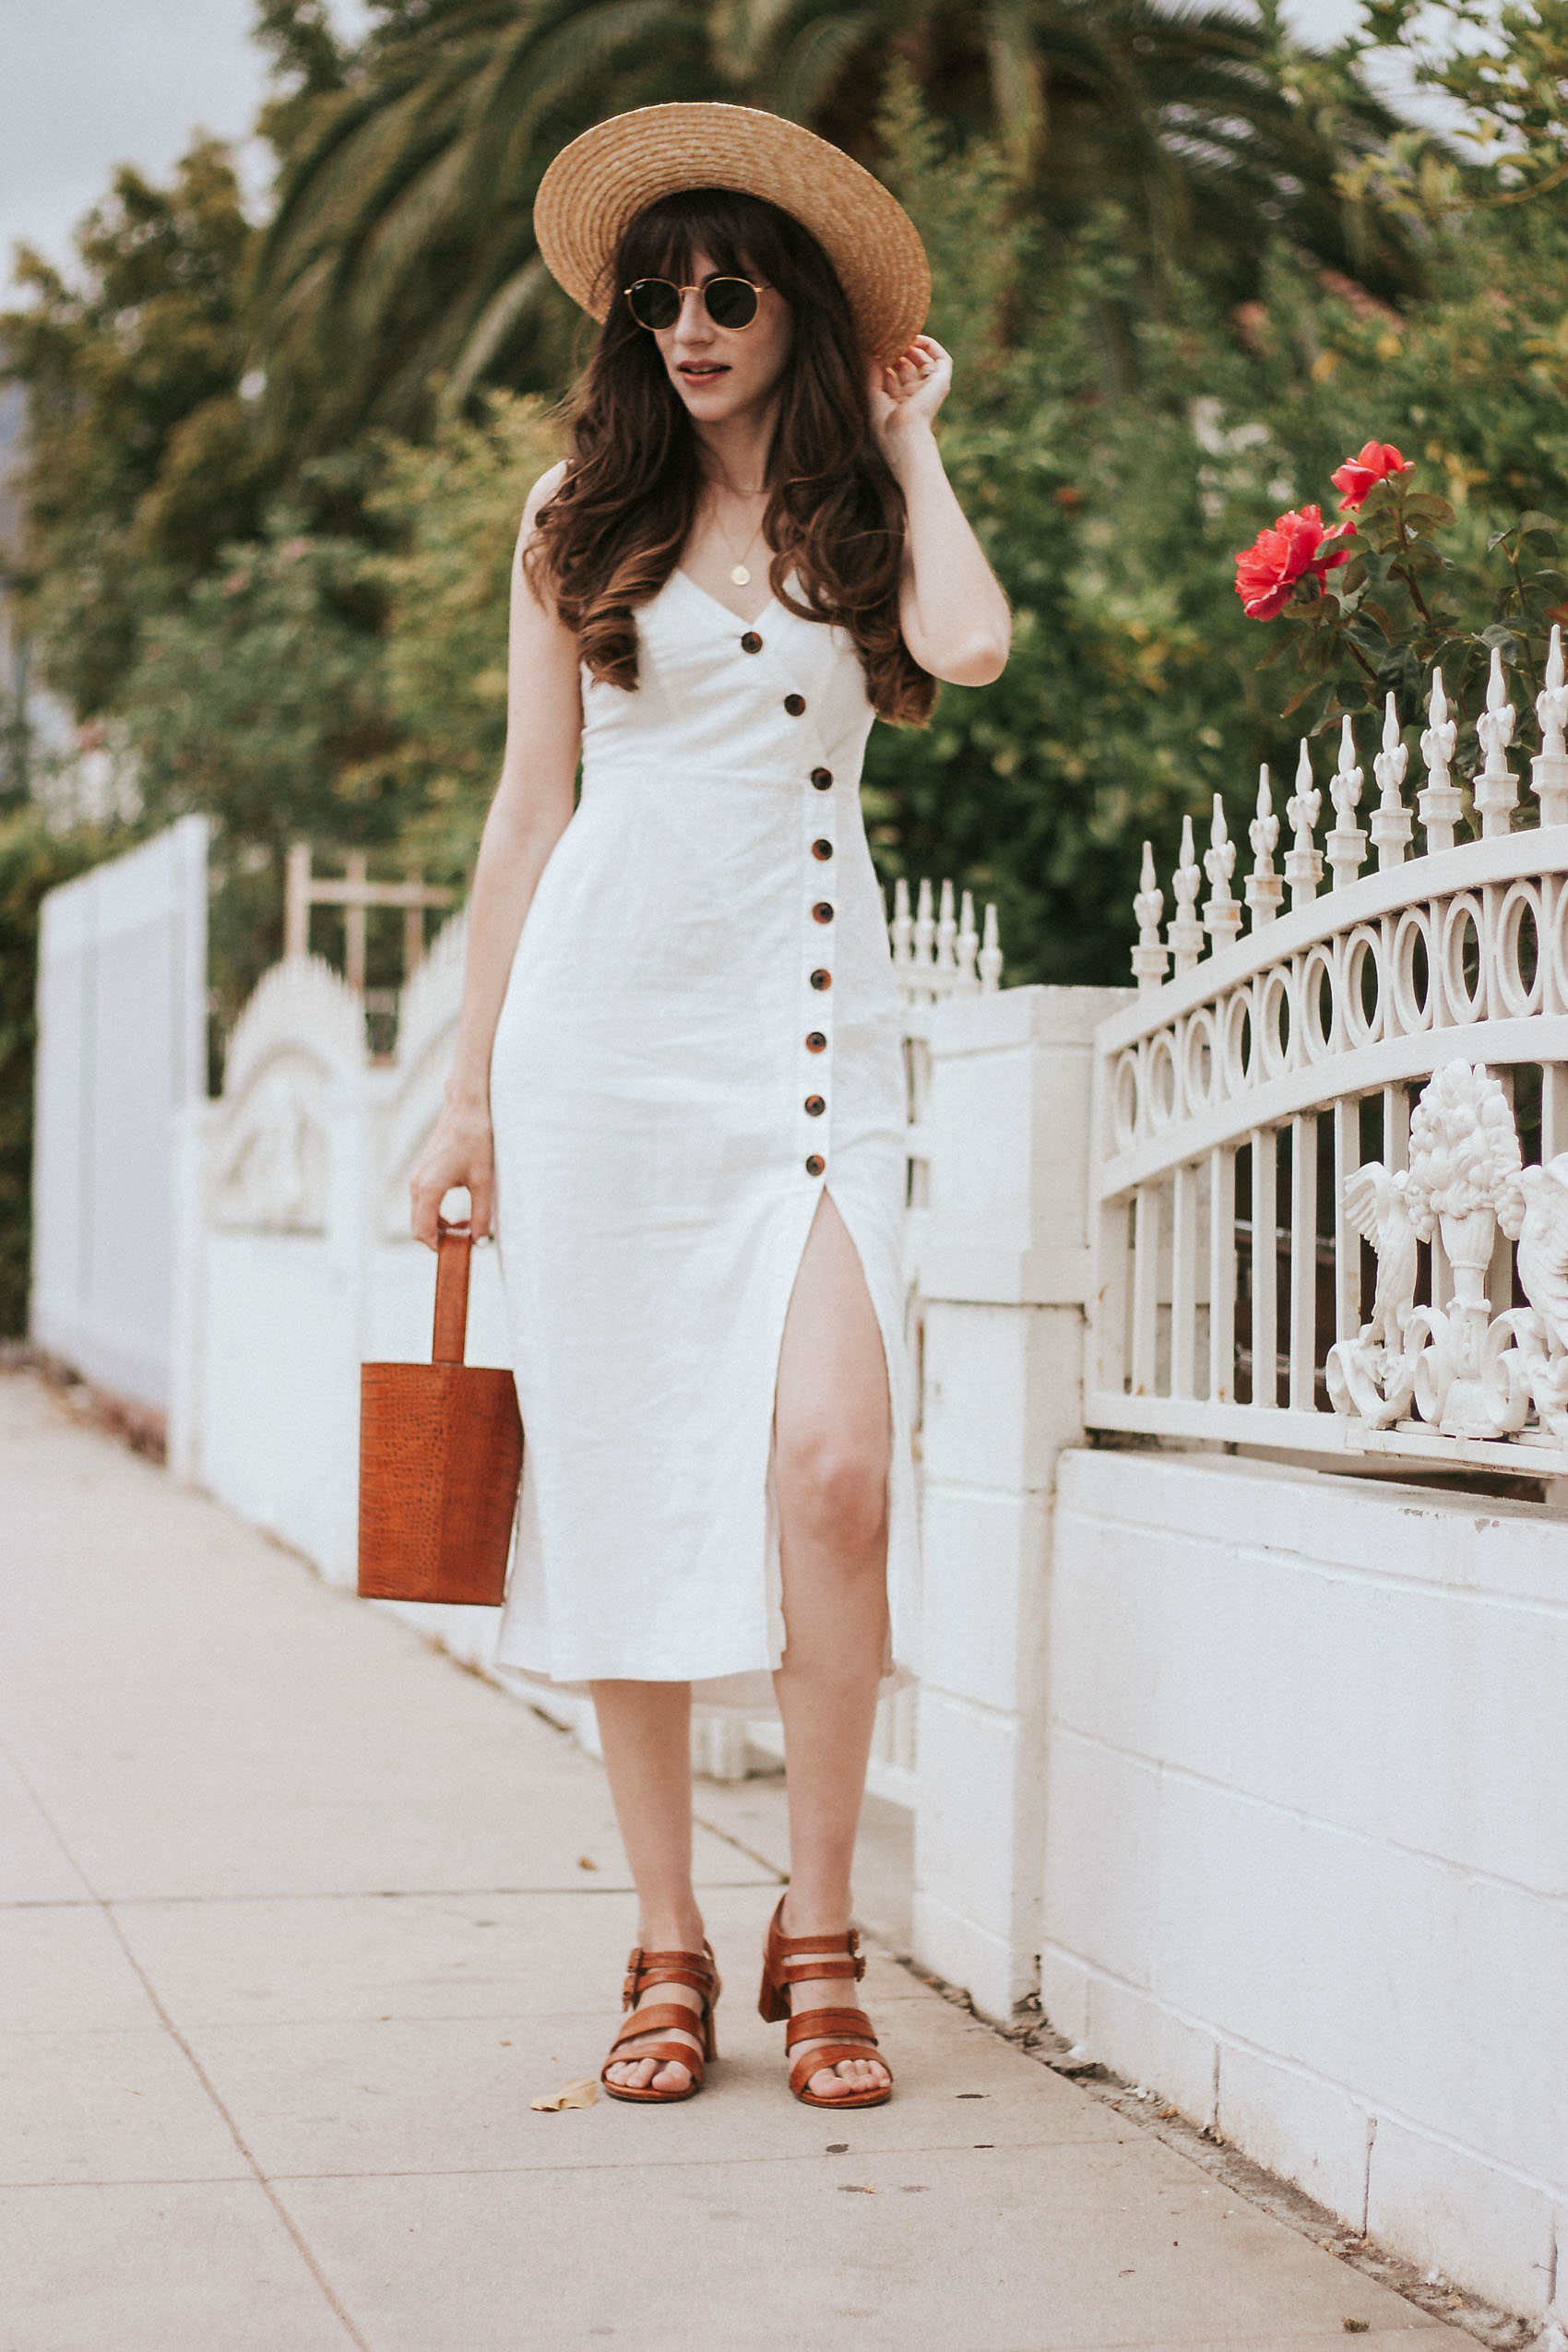 White Button Front Midi Dress with Marais USA Sandals and Bucket Bag